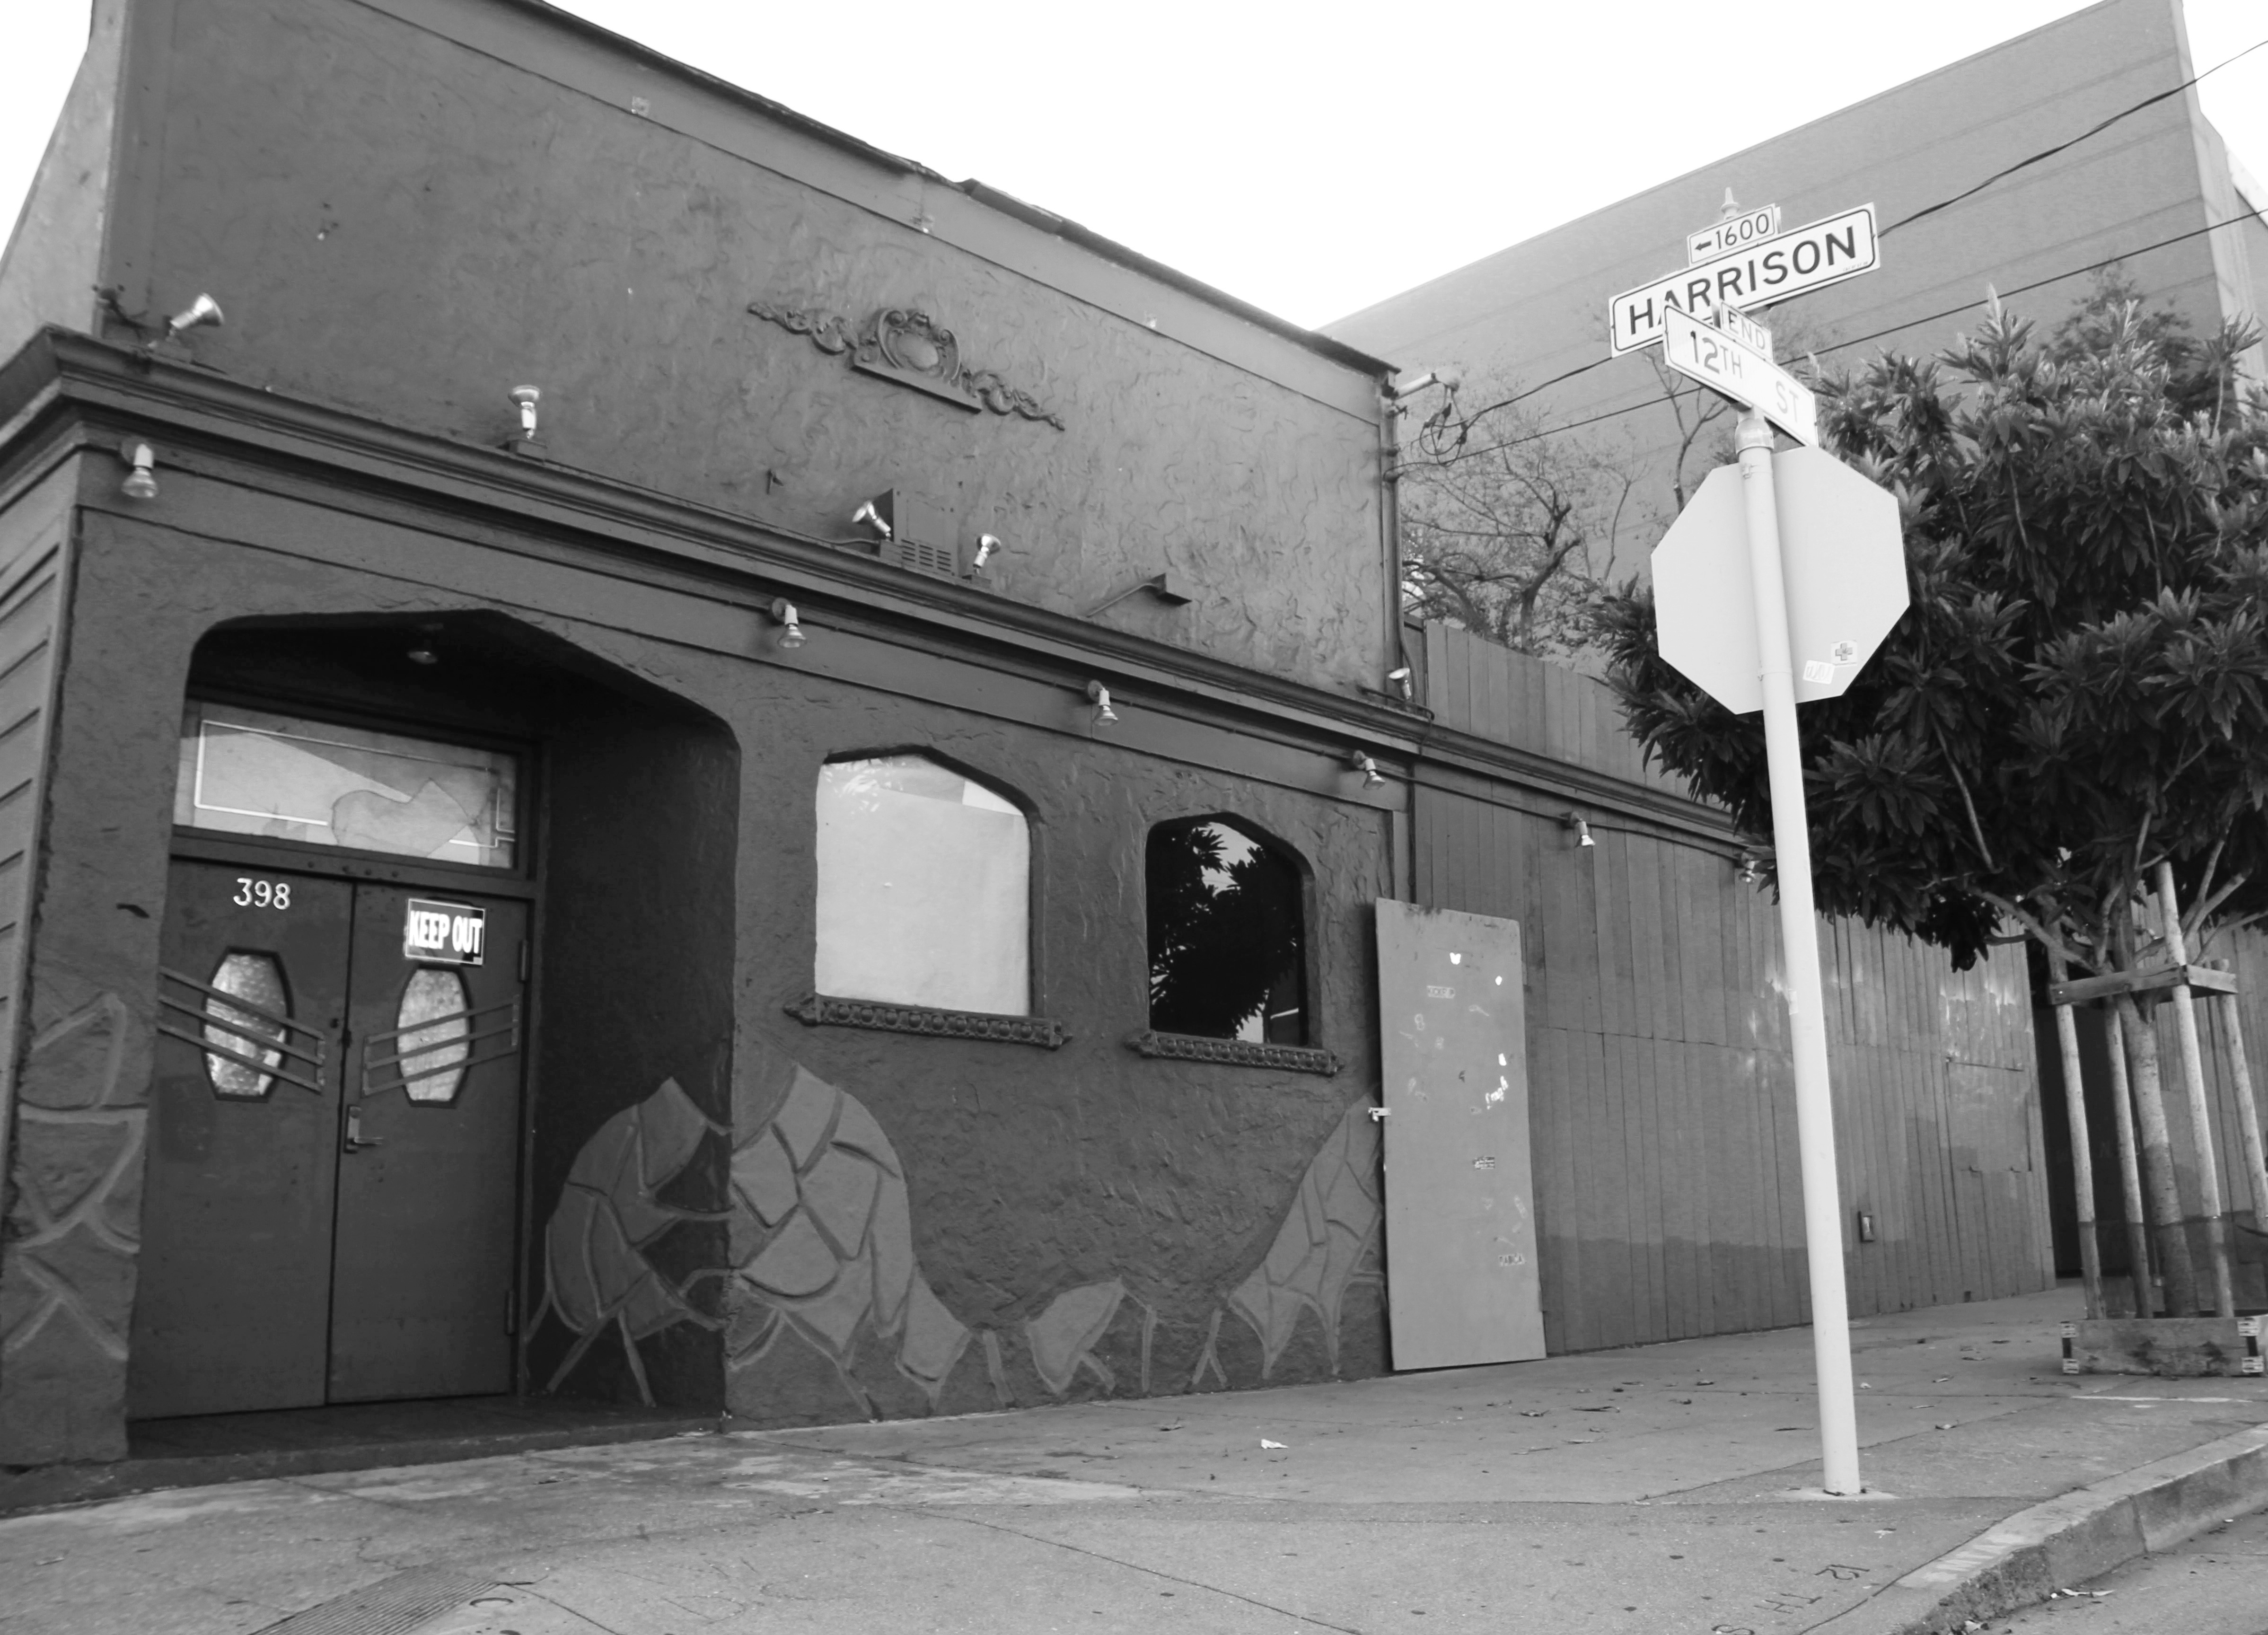 The now vacant Eagle Tavern located at the corner of 12th and Harrison streets awaits new ownership and the possibility of becoming a historic landmark via a petition originated by the Harvey Milk LGBT Democratic Club. Photo taken on Sept. 11, 2012. Photo by Leslie Calderon/The Guardsman.